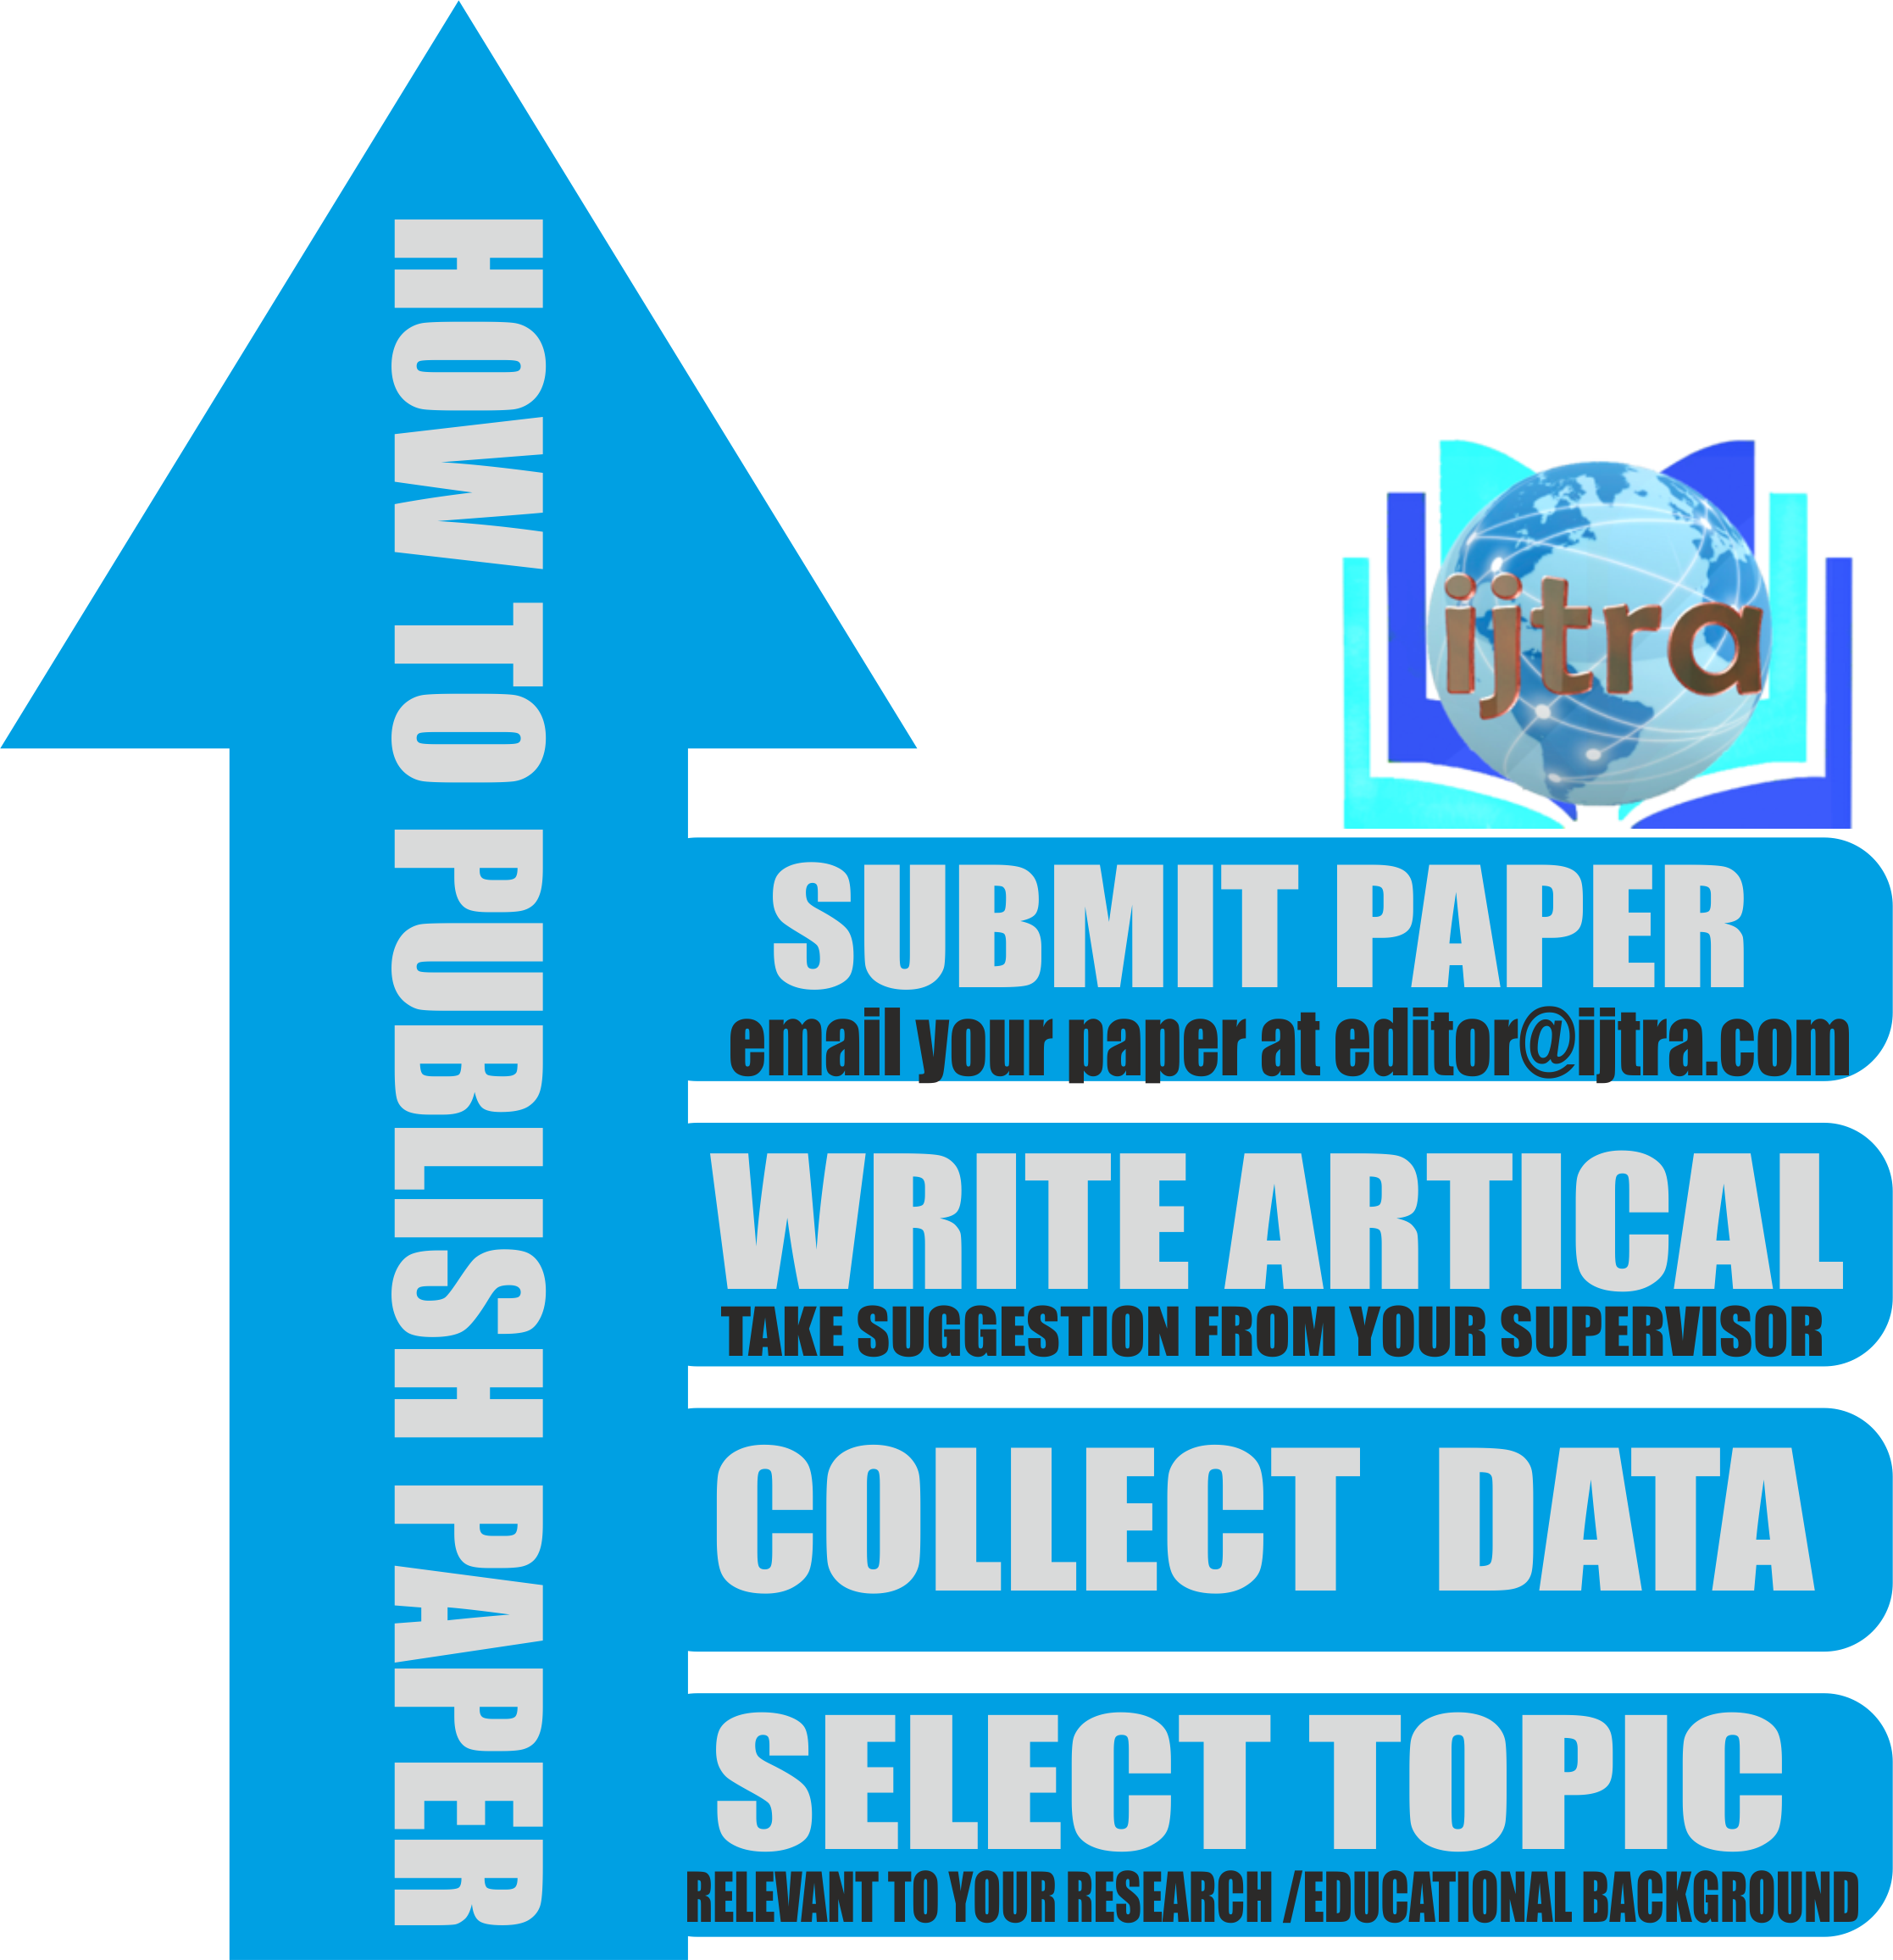 002 Ijtrauthor Ins Research Paper How To Publish Top A In International Journal Free Computer Science My Online Full